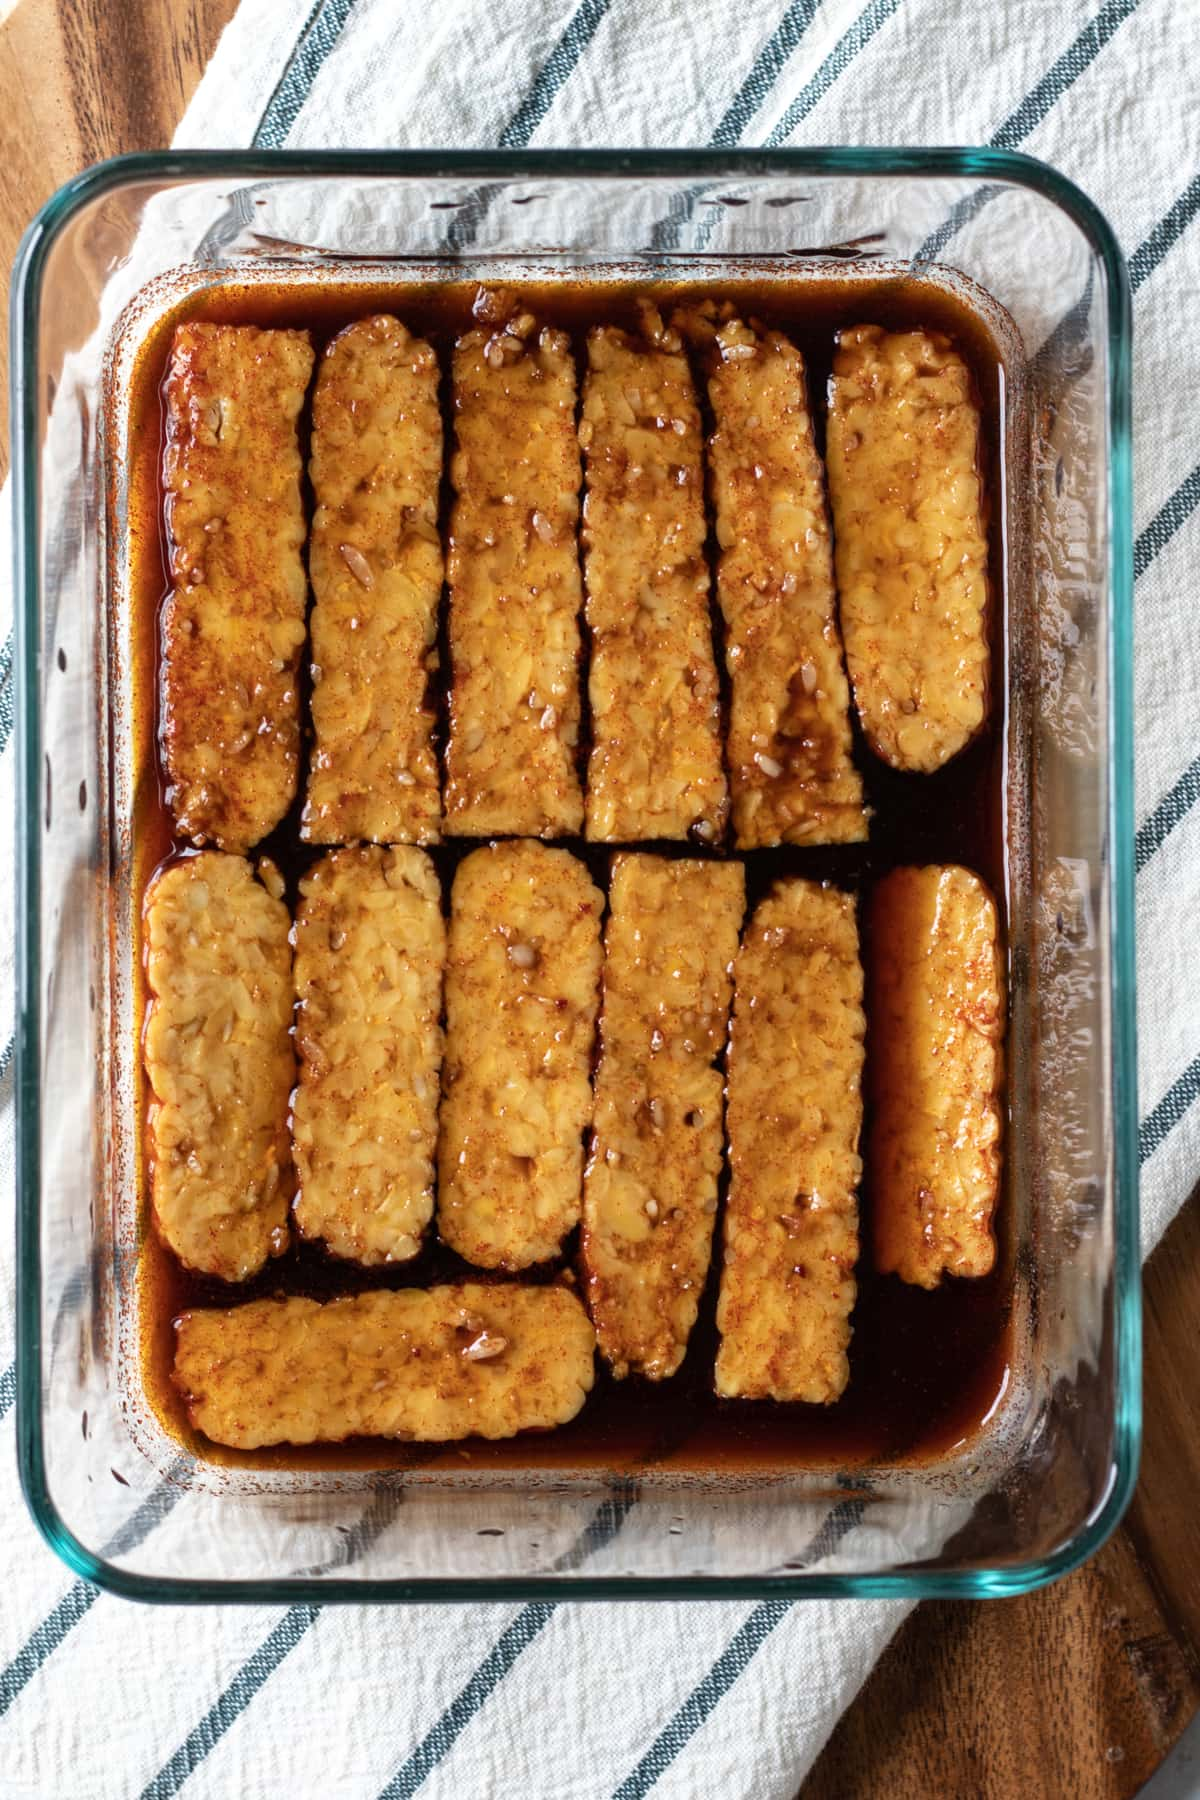 marinating tempeh in smoky/sweet mixture